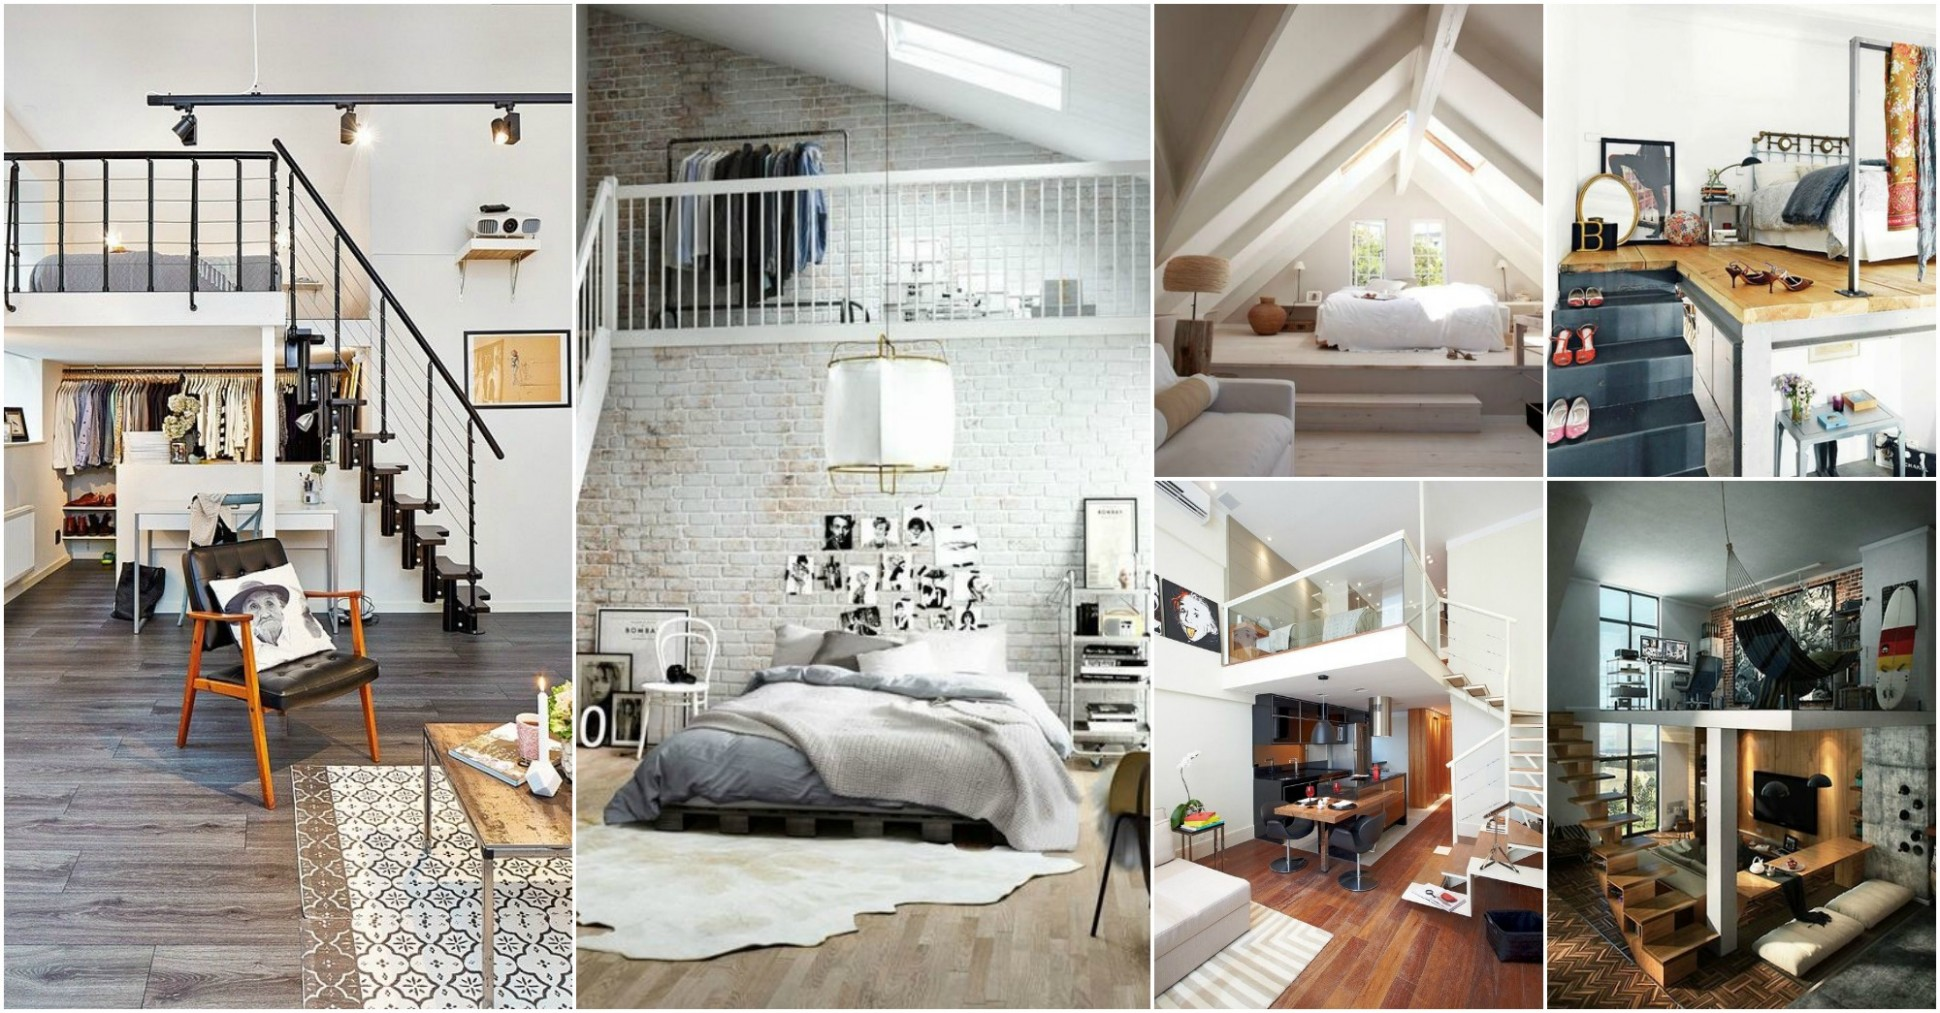 loft-apartment-decor-ideas - Loft Apartment Decor Ideas